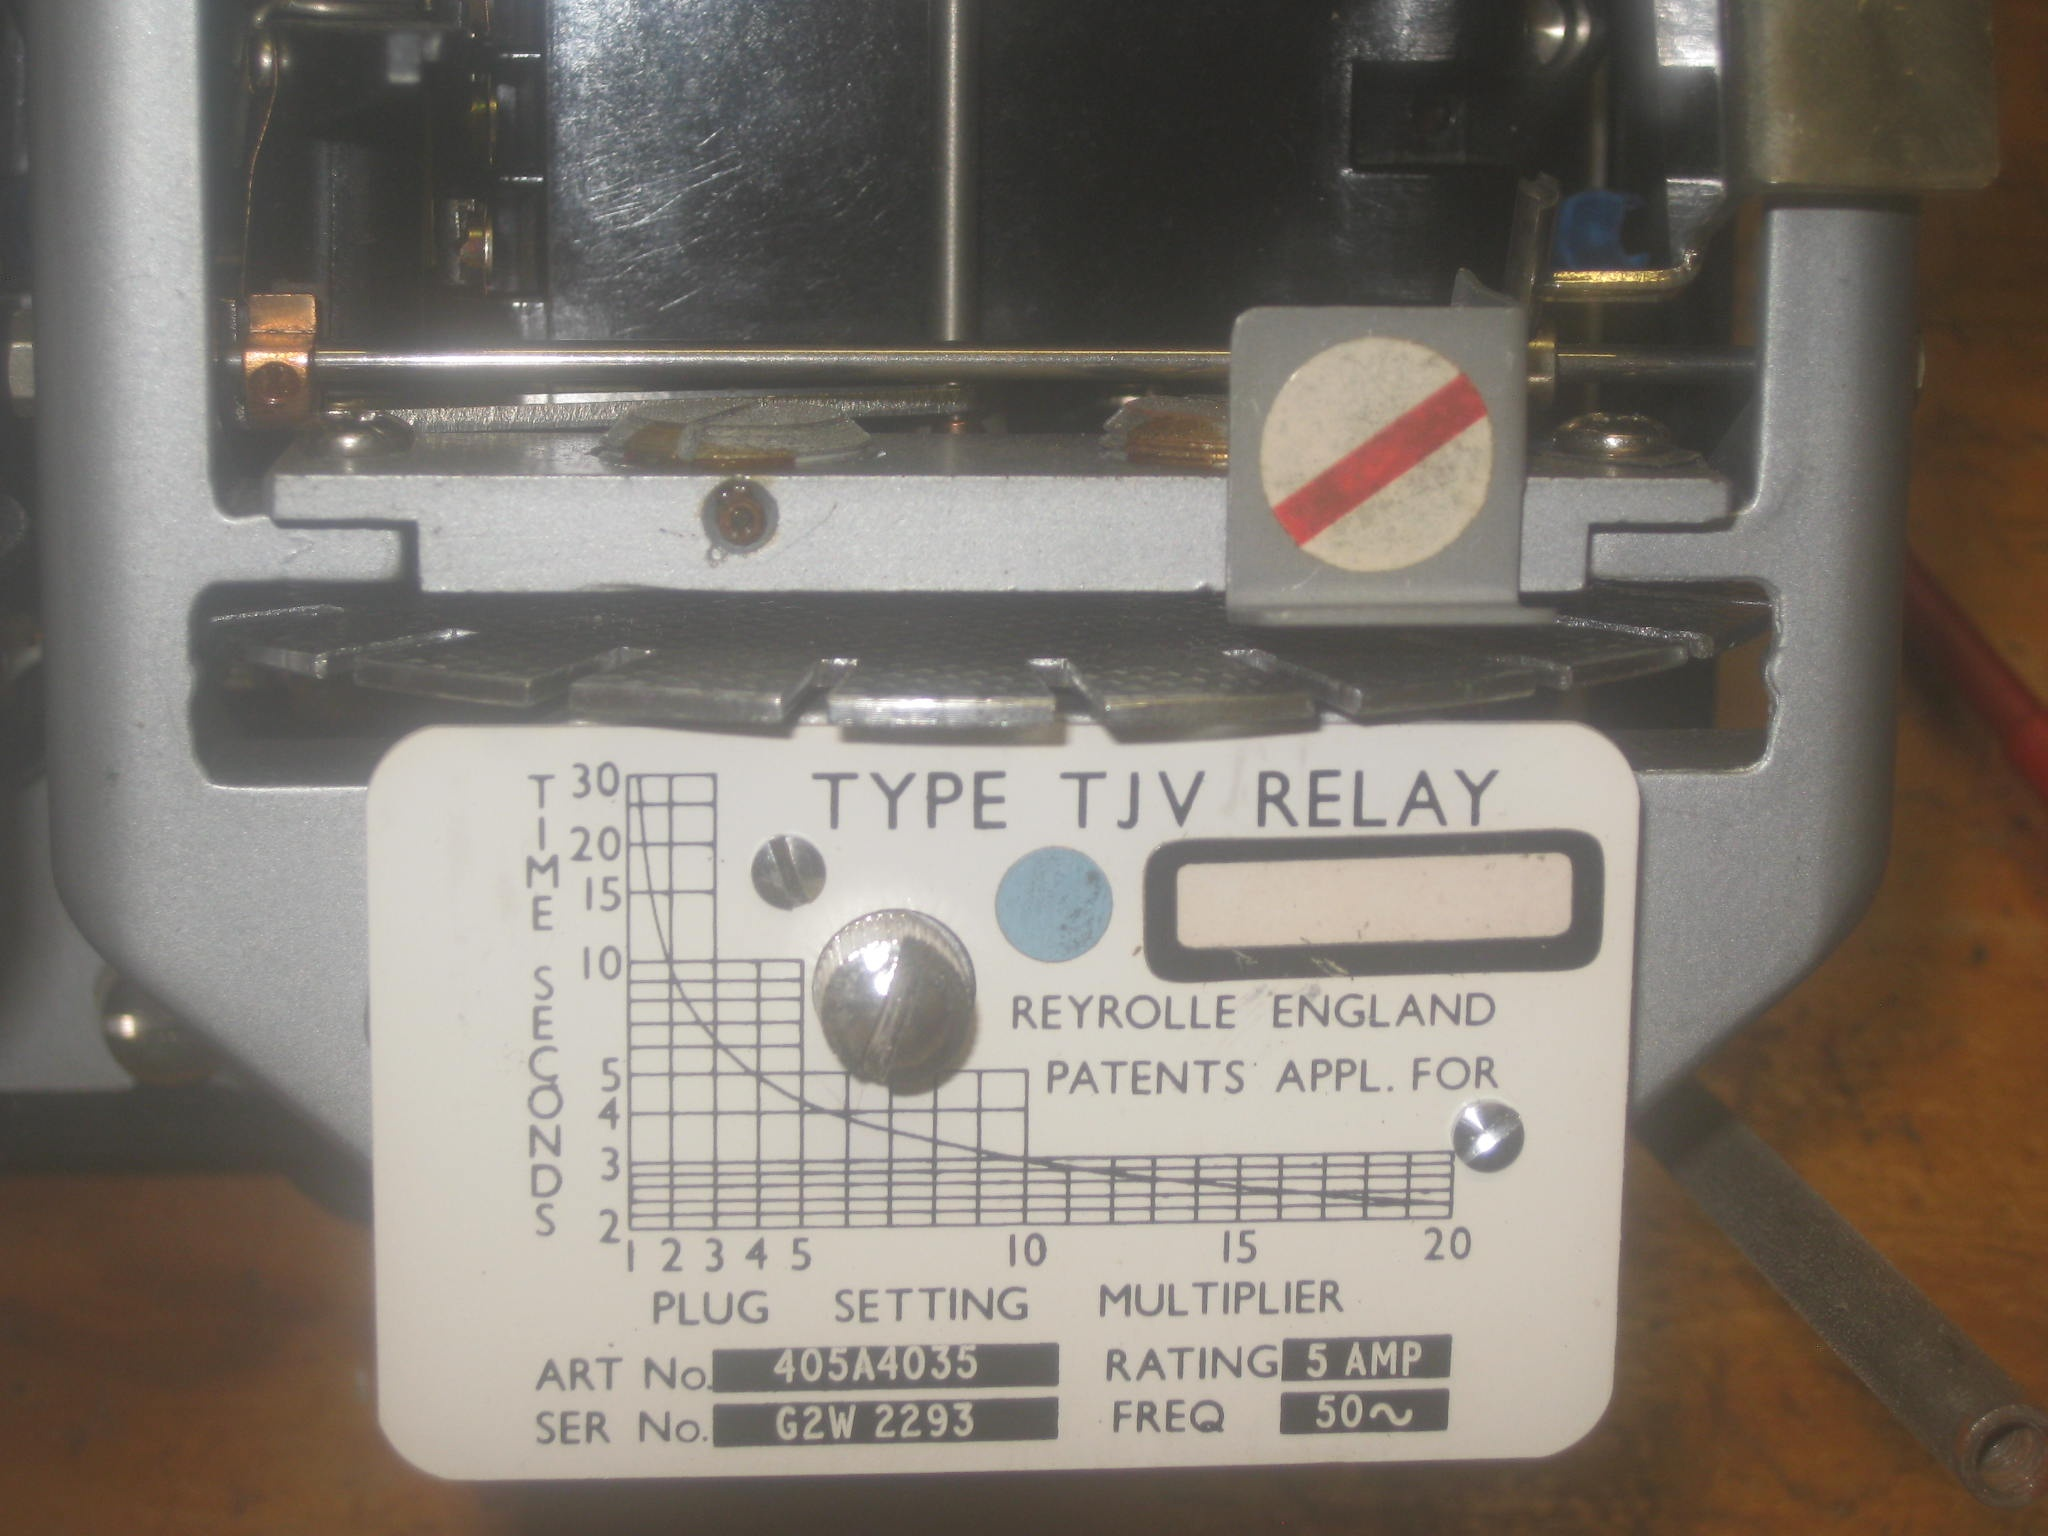 What Is The Comparison Between An Electromechanical Relay And A Current Through Coil This Trip Operates On 110 Volts Dc Supplied Via 400 5 Amps Cts Measuring Outgoing 11000 Supply